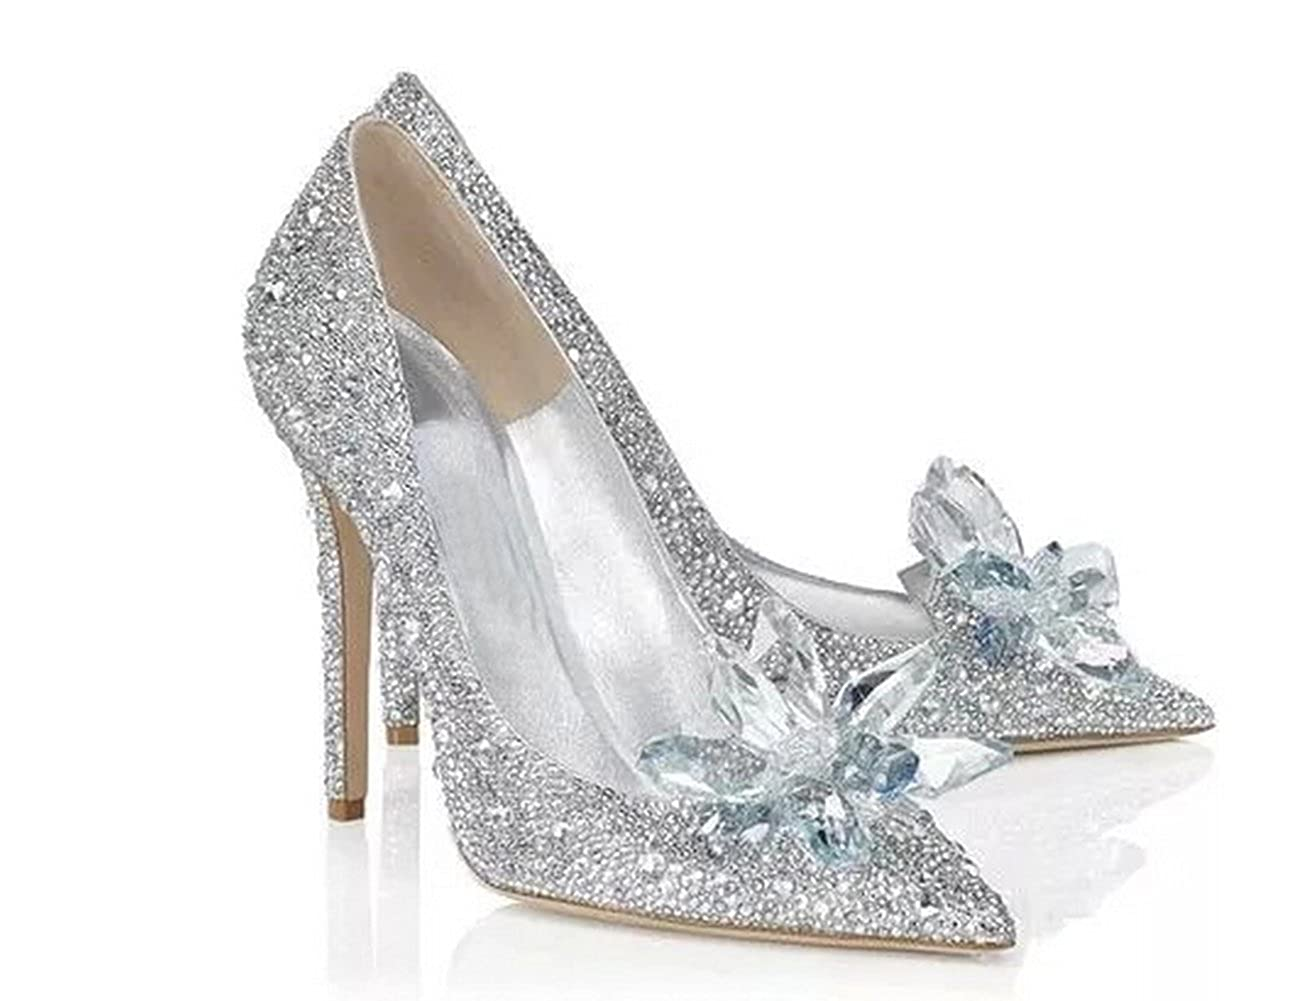 db61a628dd1 Cinderella Movie 2015 The Glass Slipper Princess Crystal Shoes Adult Size